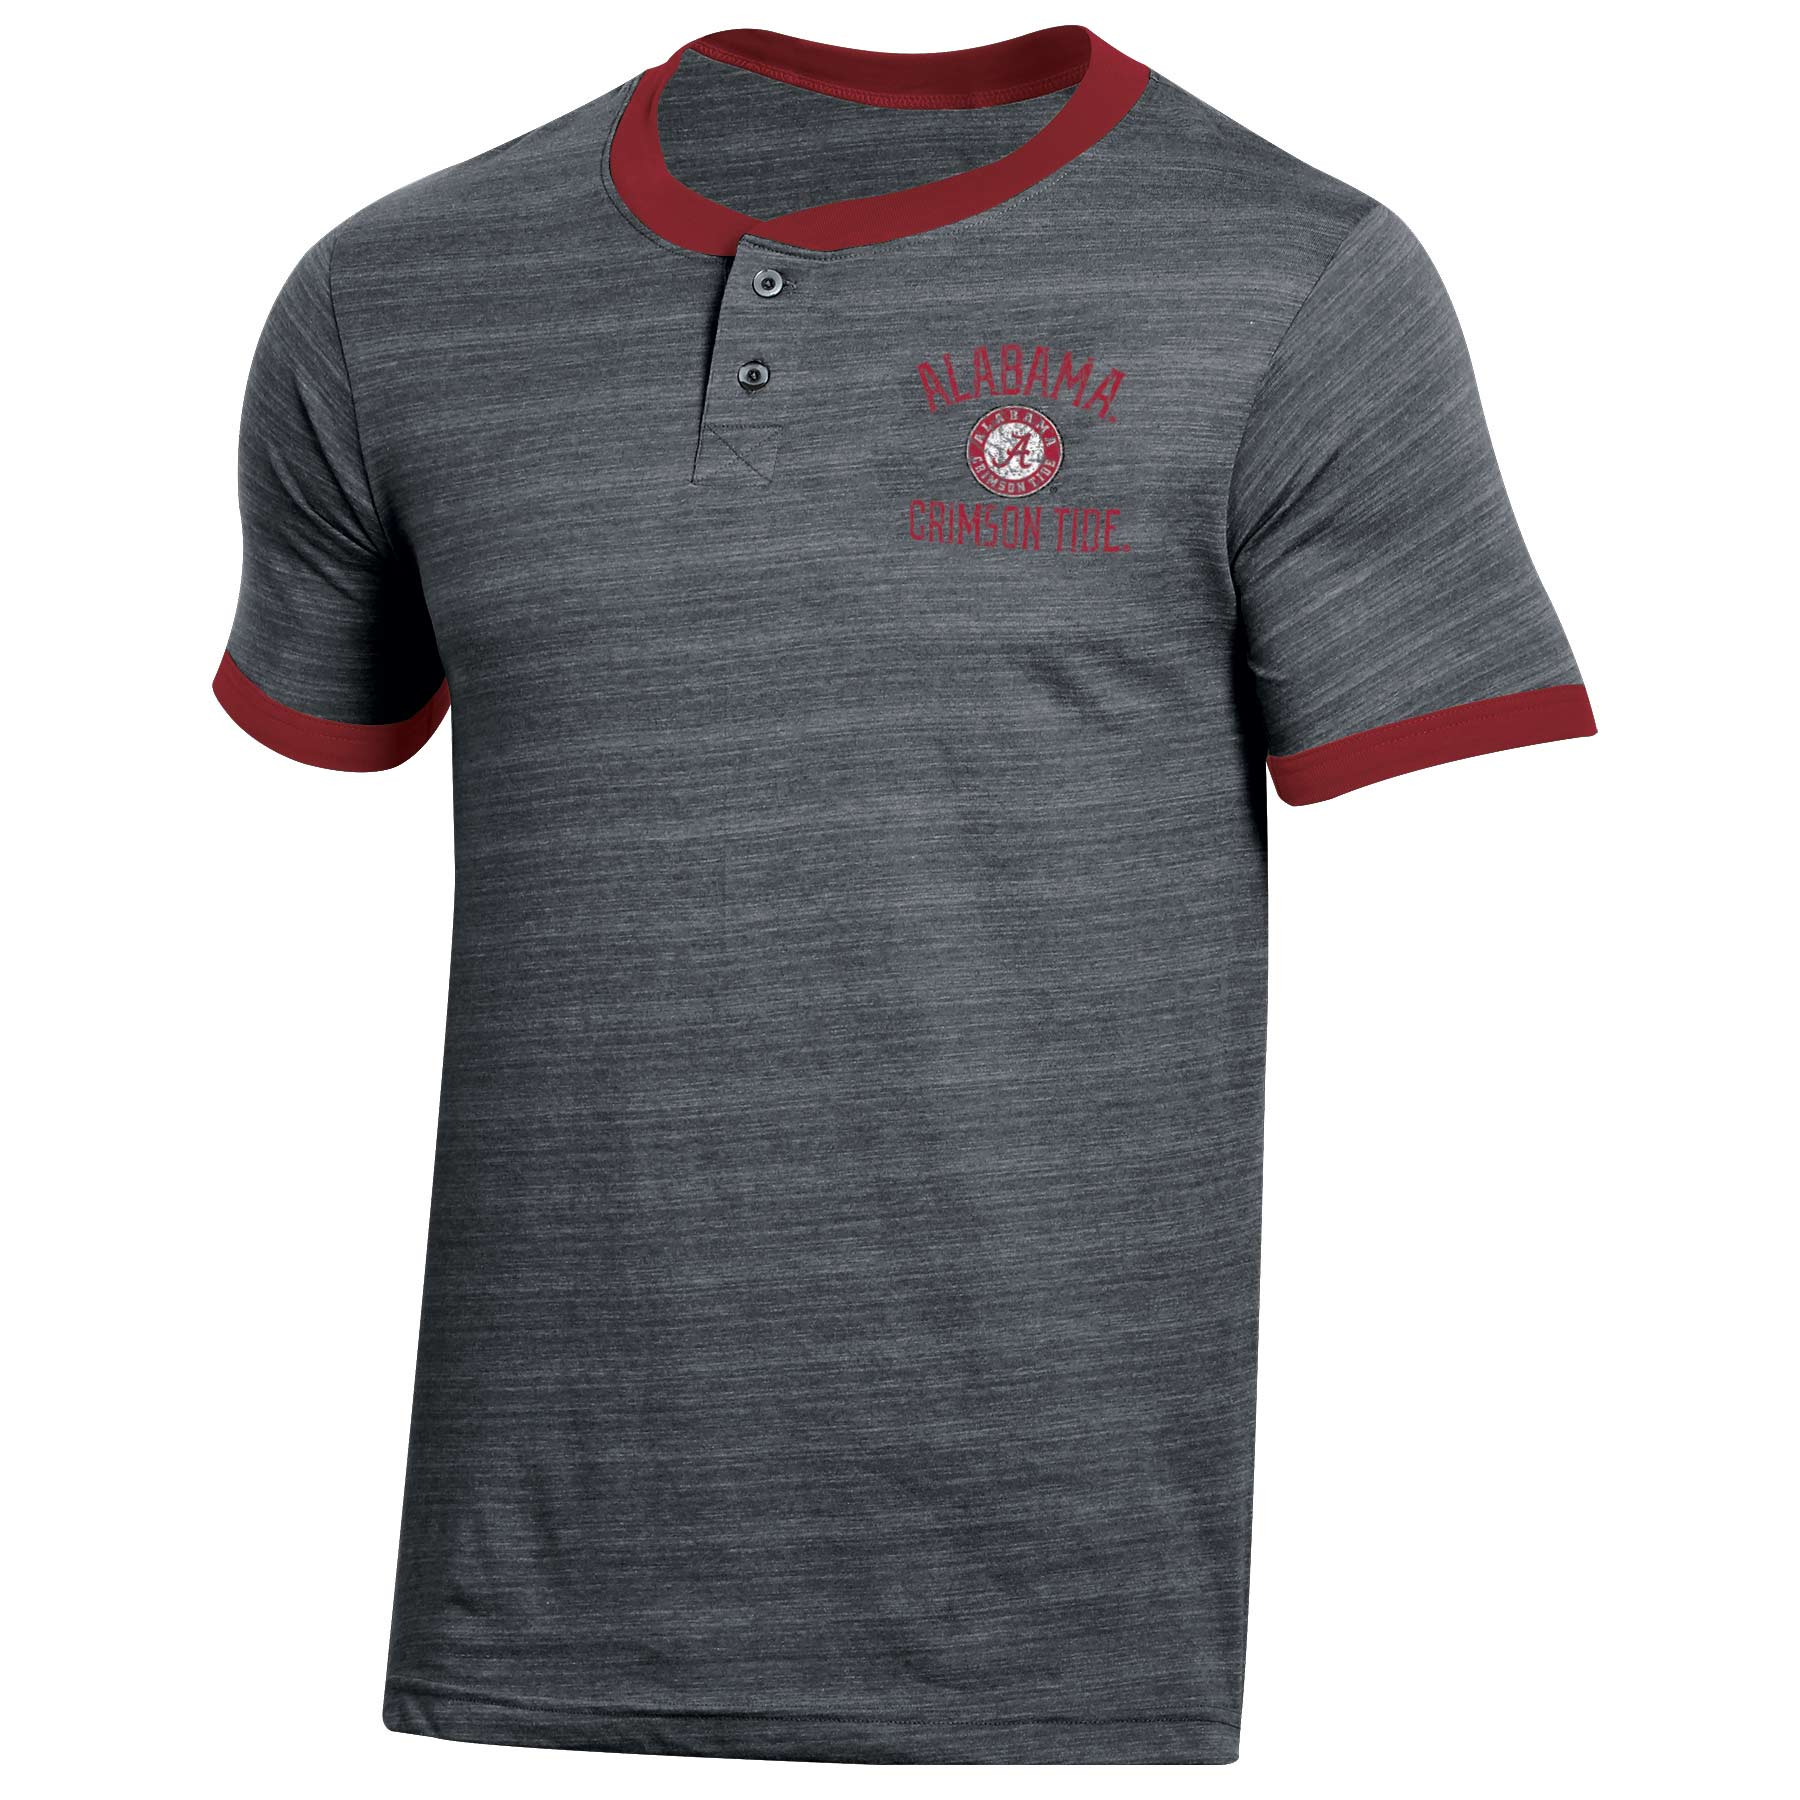 Men's Russell Heathered Gray Alabama Crimson Tide Distressed Two-Button T-Shirt